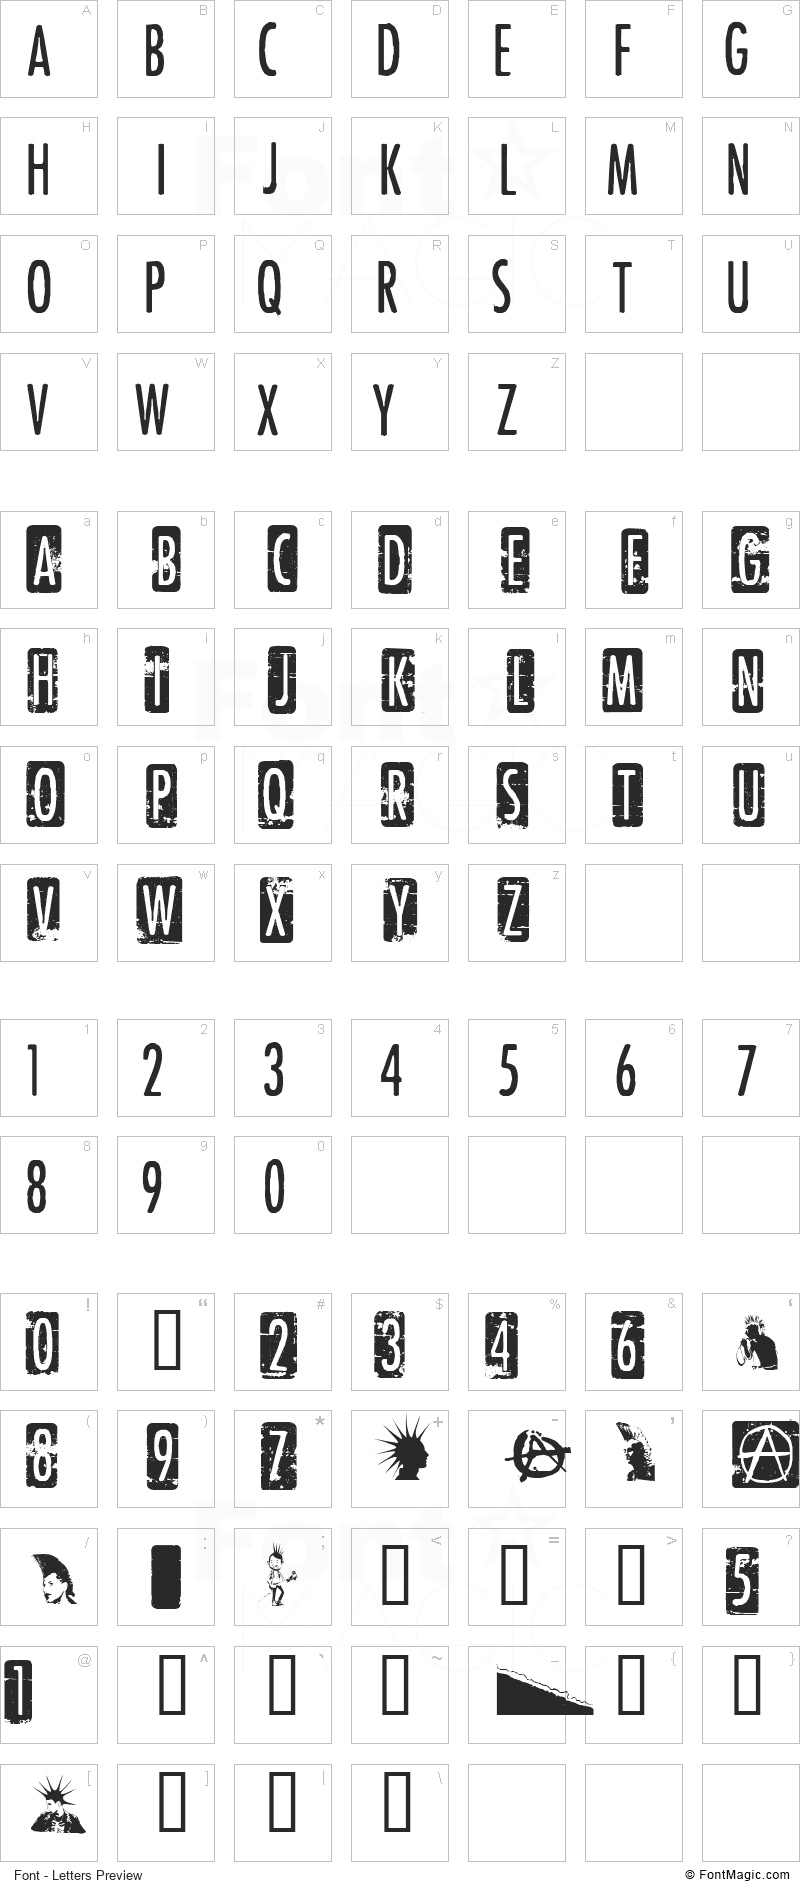 Punk Rock Show Font - All Latters Preview Chart